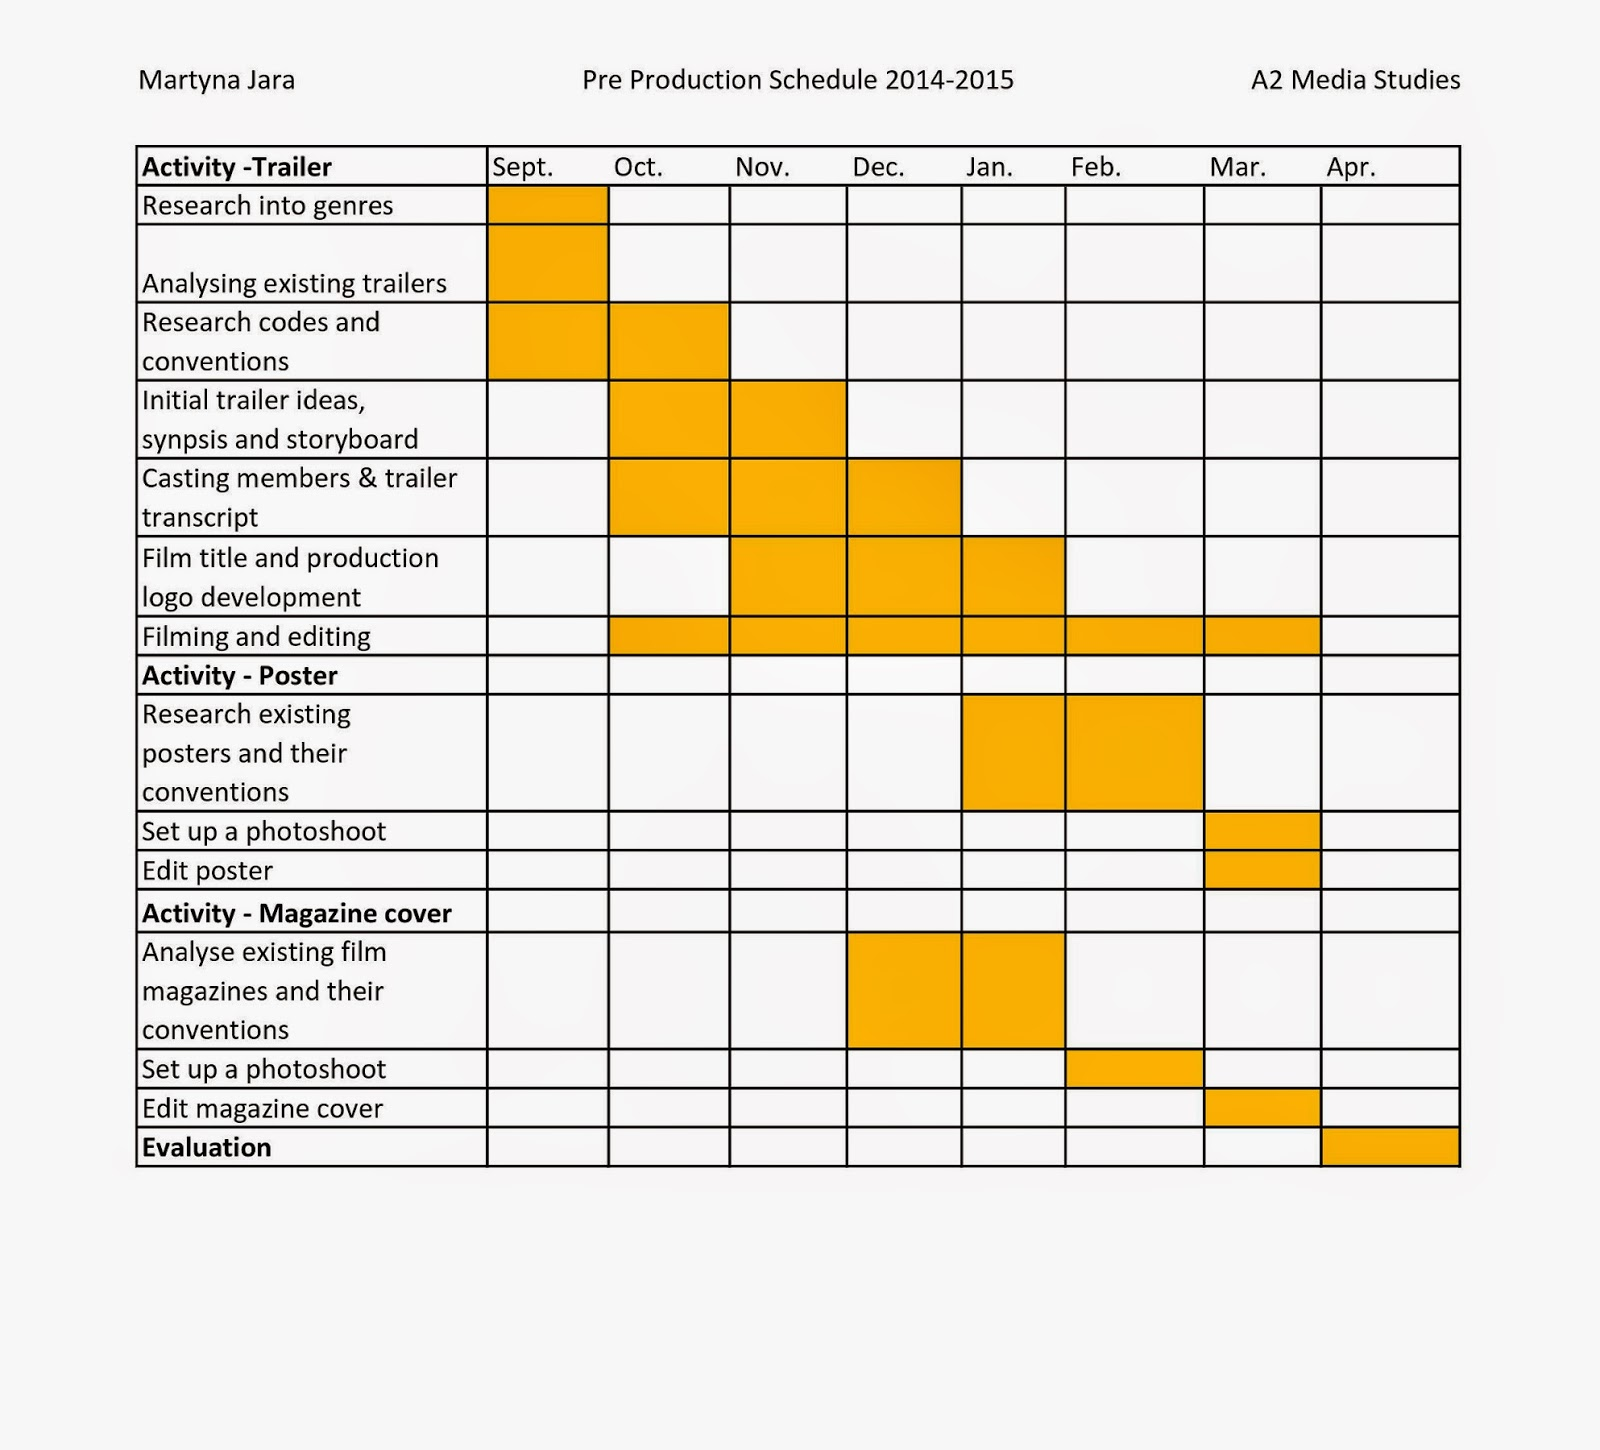 A2 media coursework it is in a form of a gantt chart clearly stating my personalized deadlines nvjuhfo Choice Image